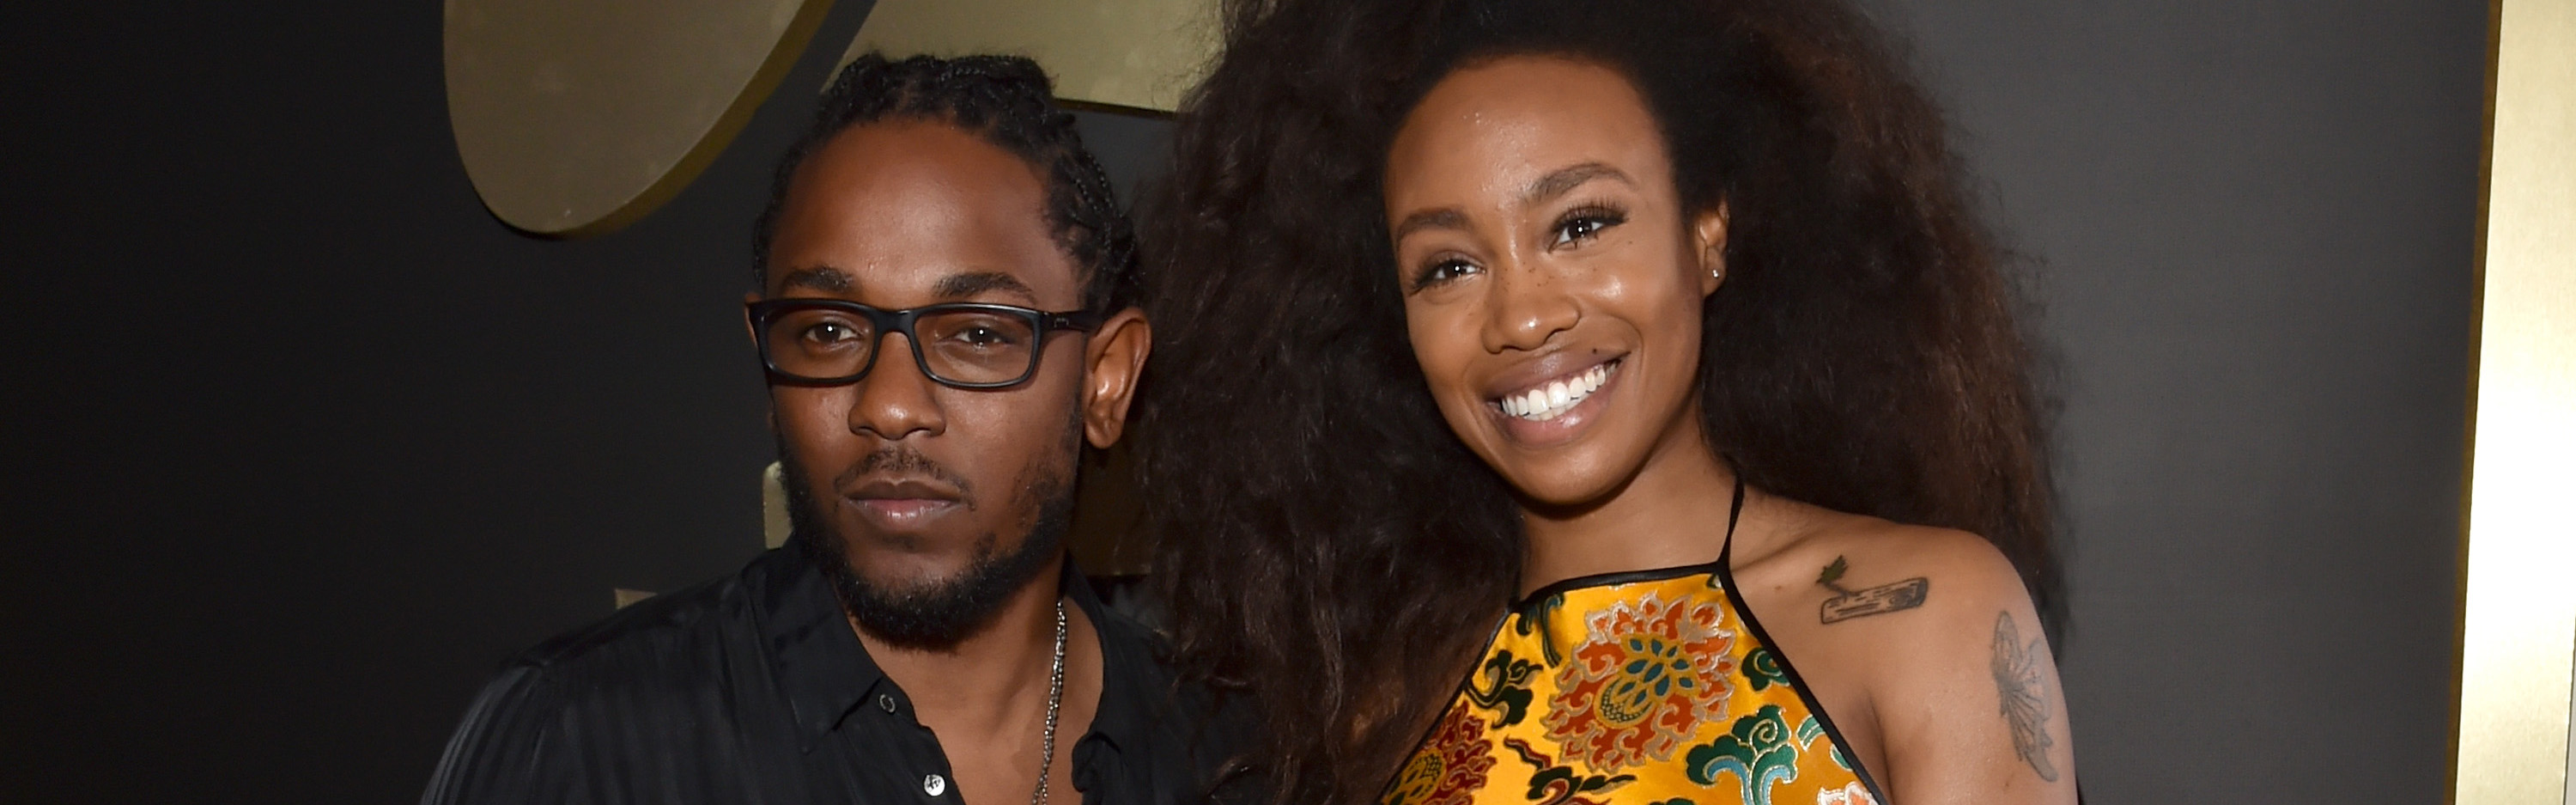 kendrick-lamar-sza-black-panther-soundtrack-all-the-stars